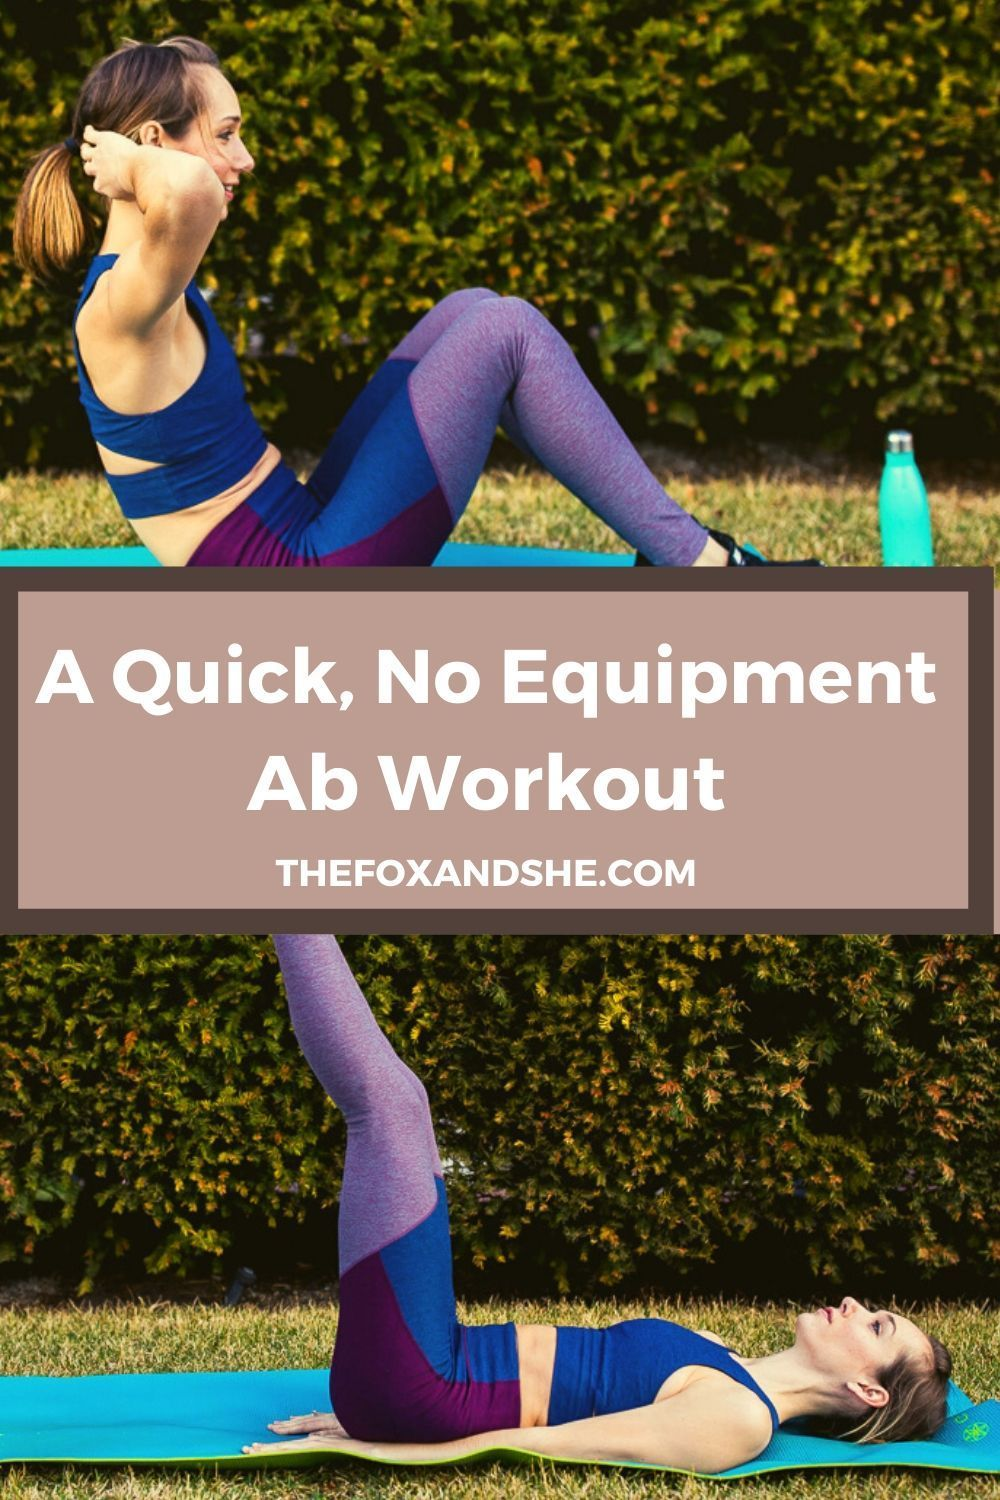 Since having my son, I've learned how to stay fit as a mom. Quite often that means workouts in my living room. This at home ab workout is an amazing and easy core exercise for women. It requires no equipment and is quick—you can do it during nap time. Click through to get the full no equipment abs workout. #absworkout #momworkout #strongmom